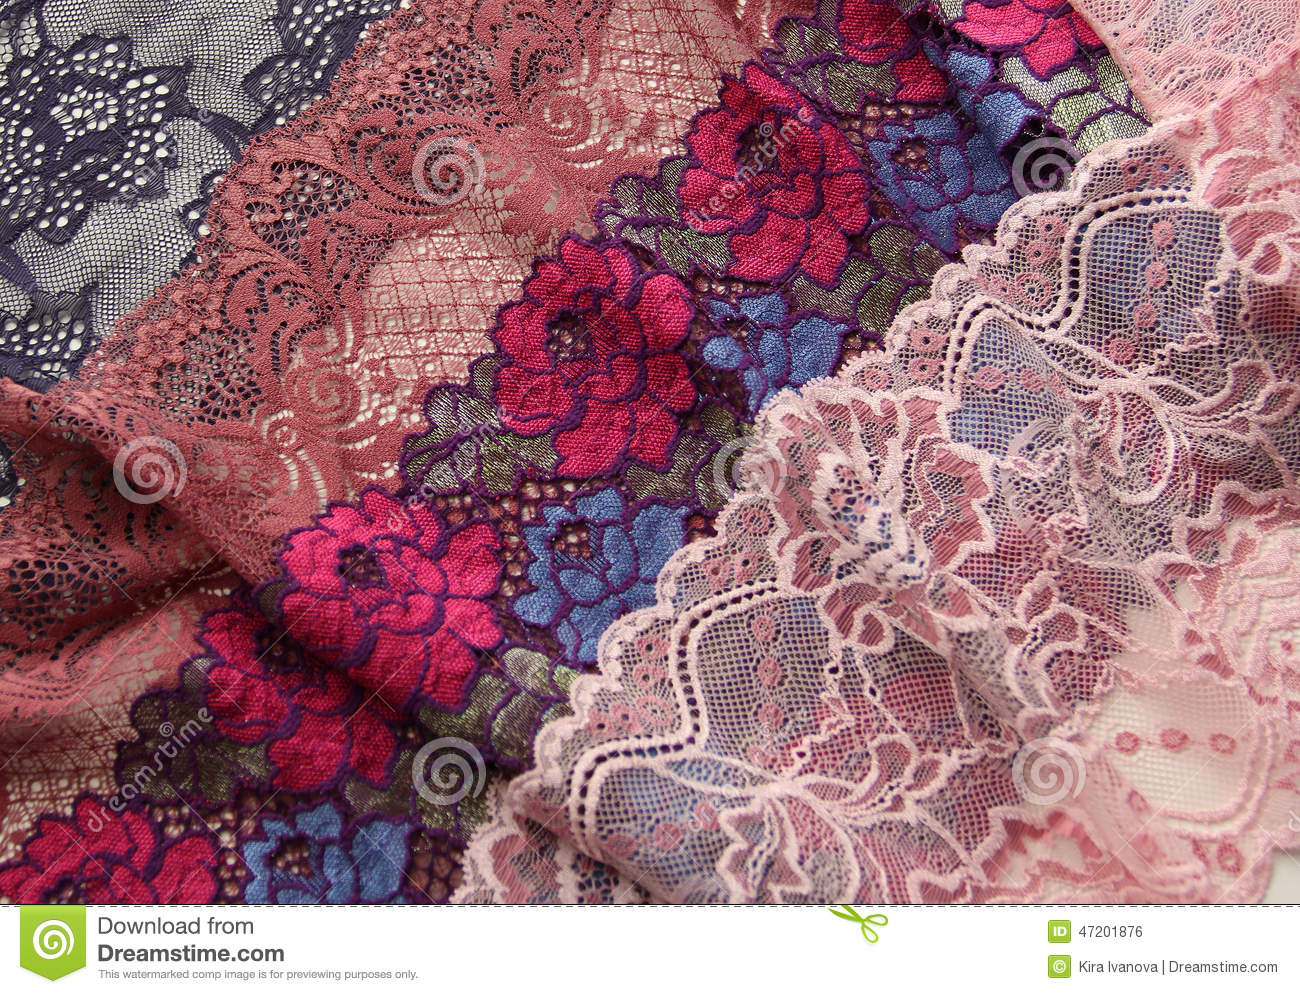 Different Kinds Of Lace Materials And Textures Stock Photo